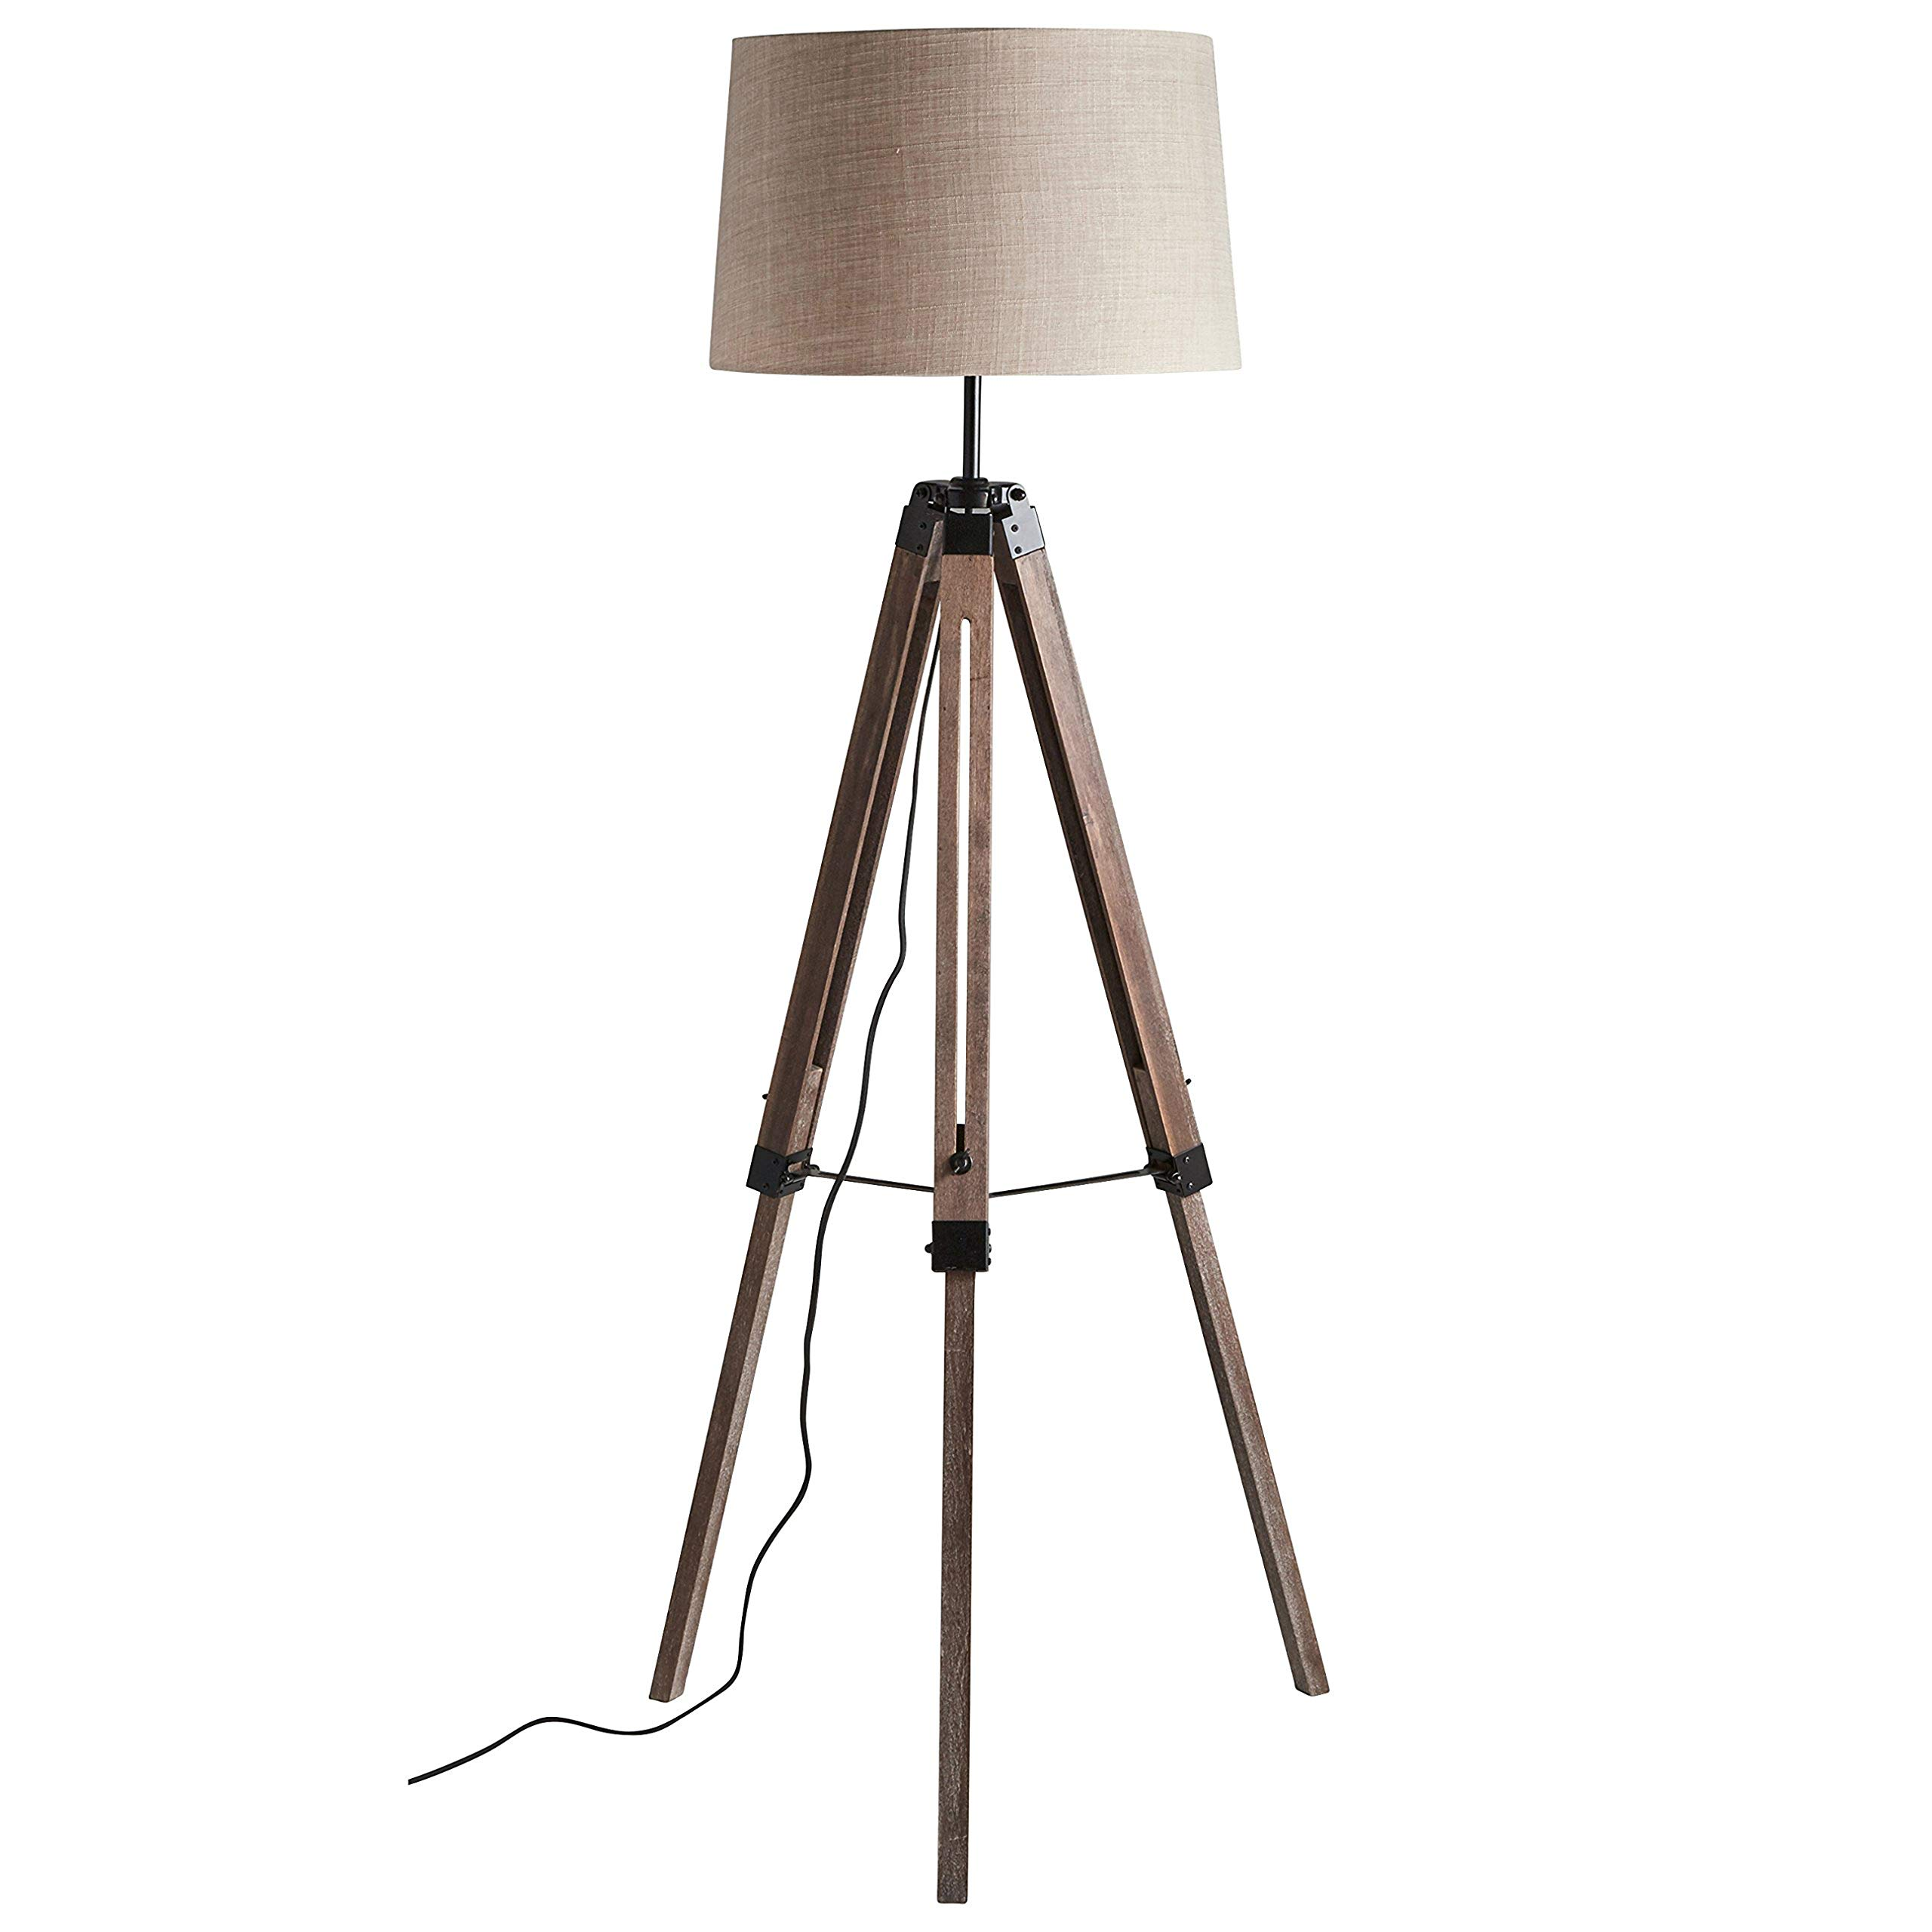 Stone & Beam Modern Tripod Floor Lamp, 59.5''H, With Bulb, Pine with Linen Shade